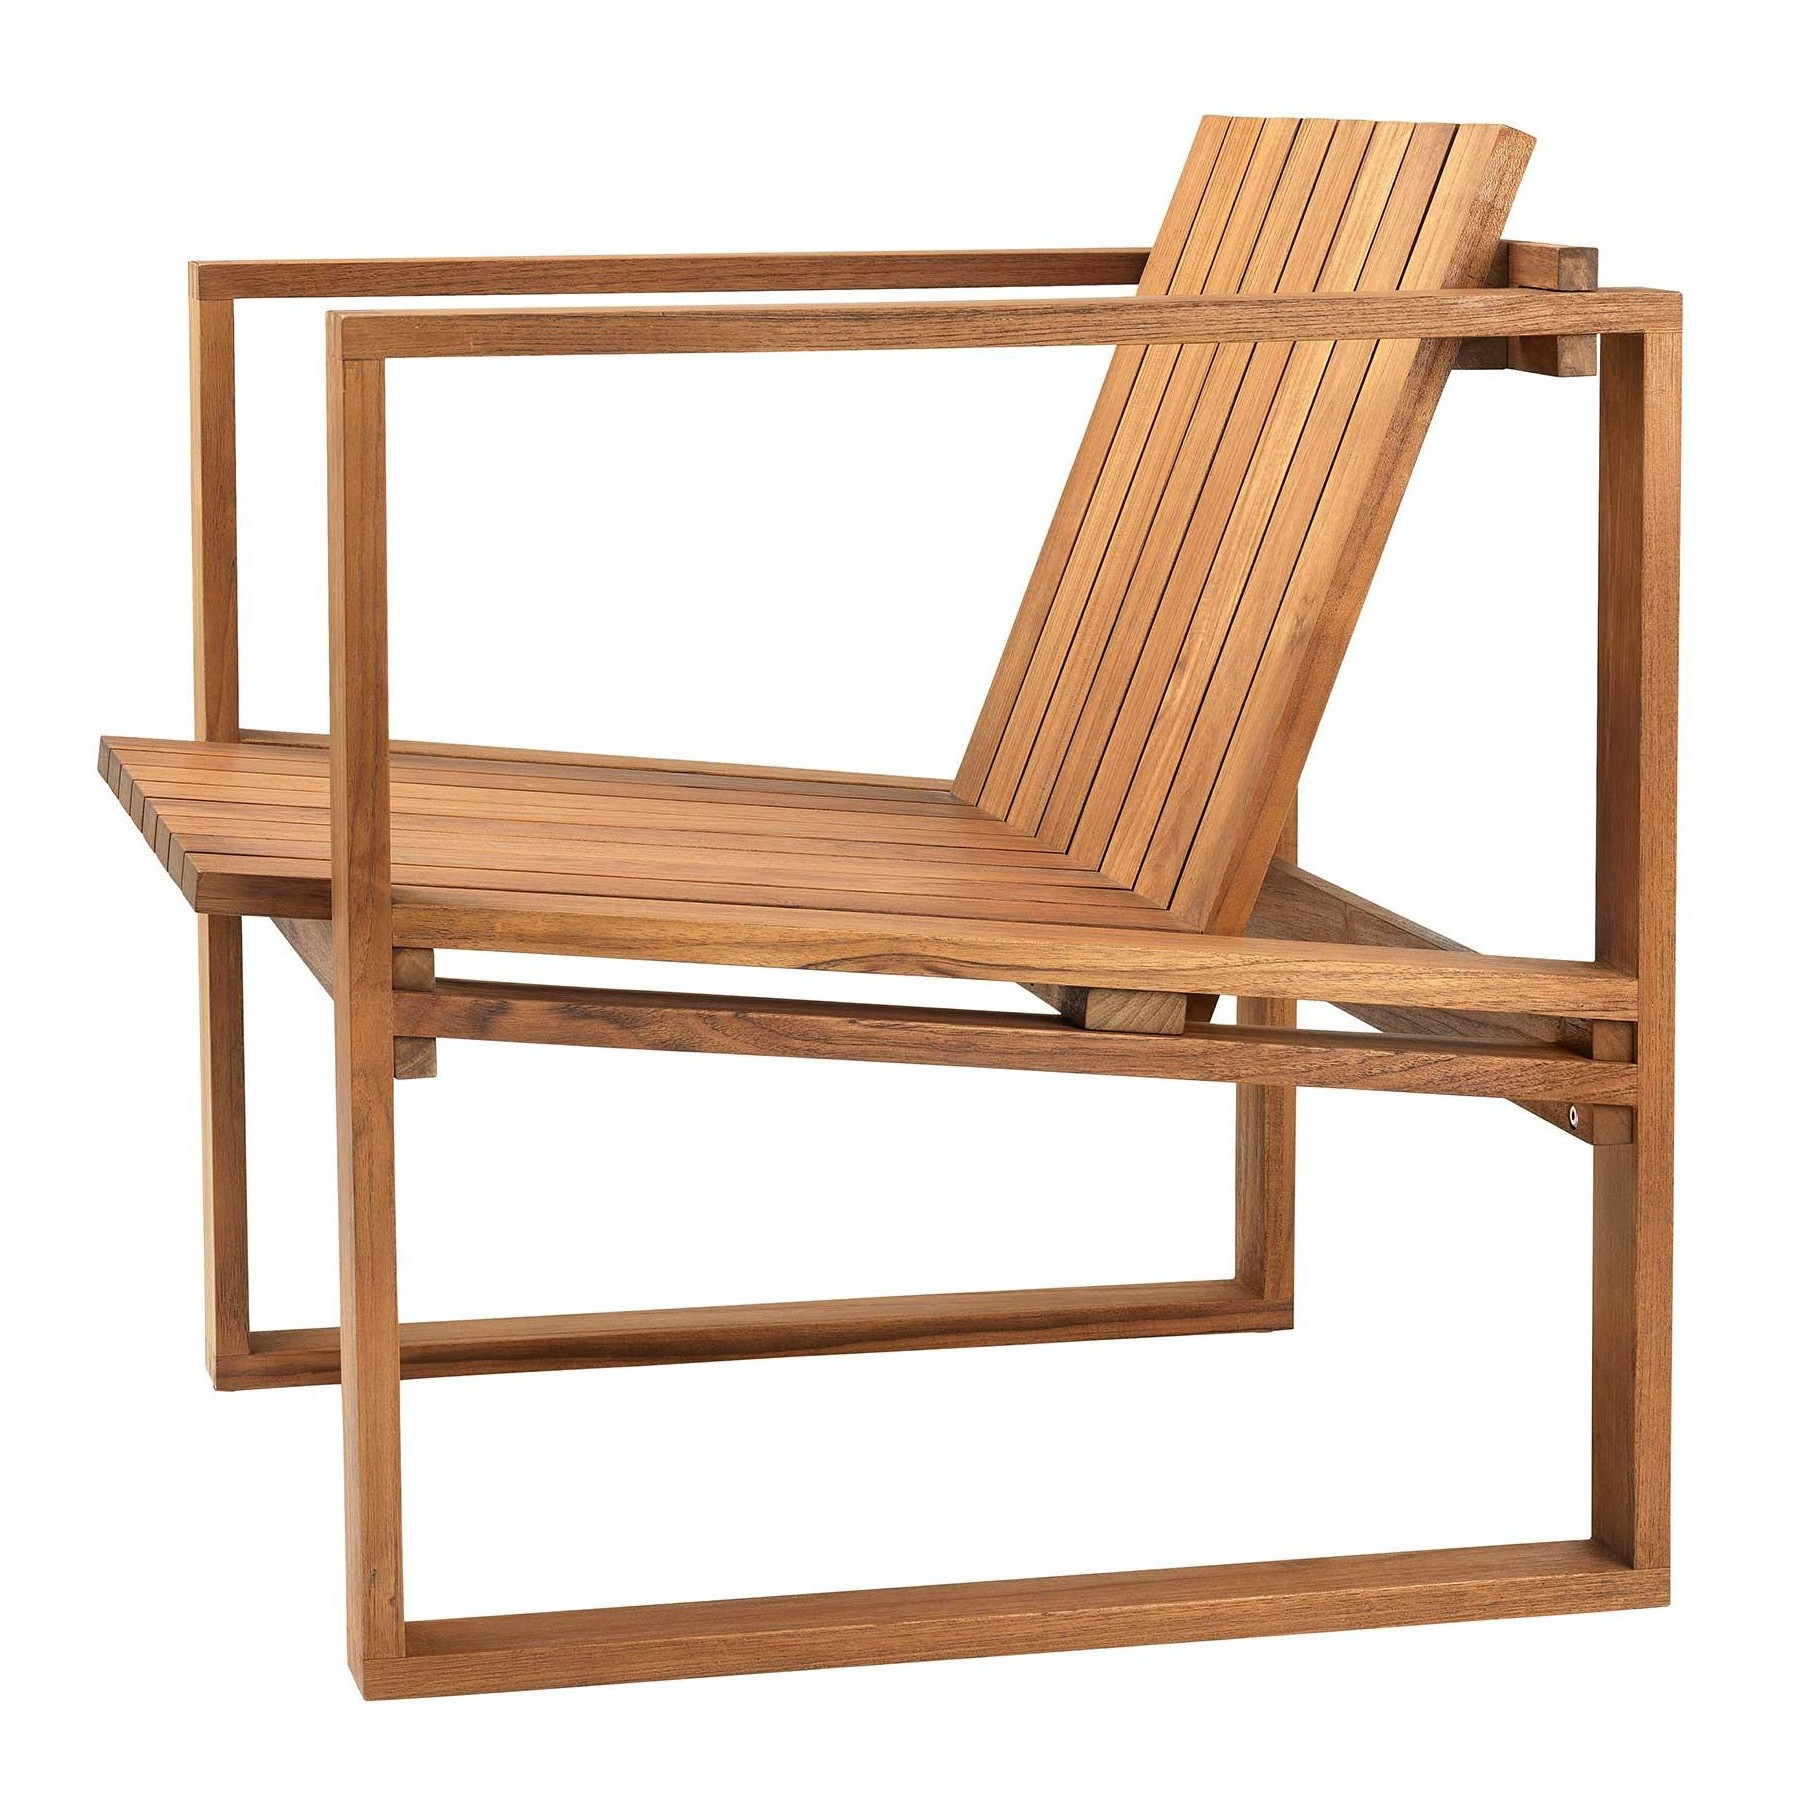 Carl hansen bk11 outdoor lounge chair ambientedirect